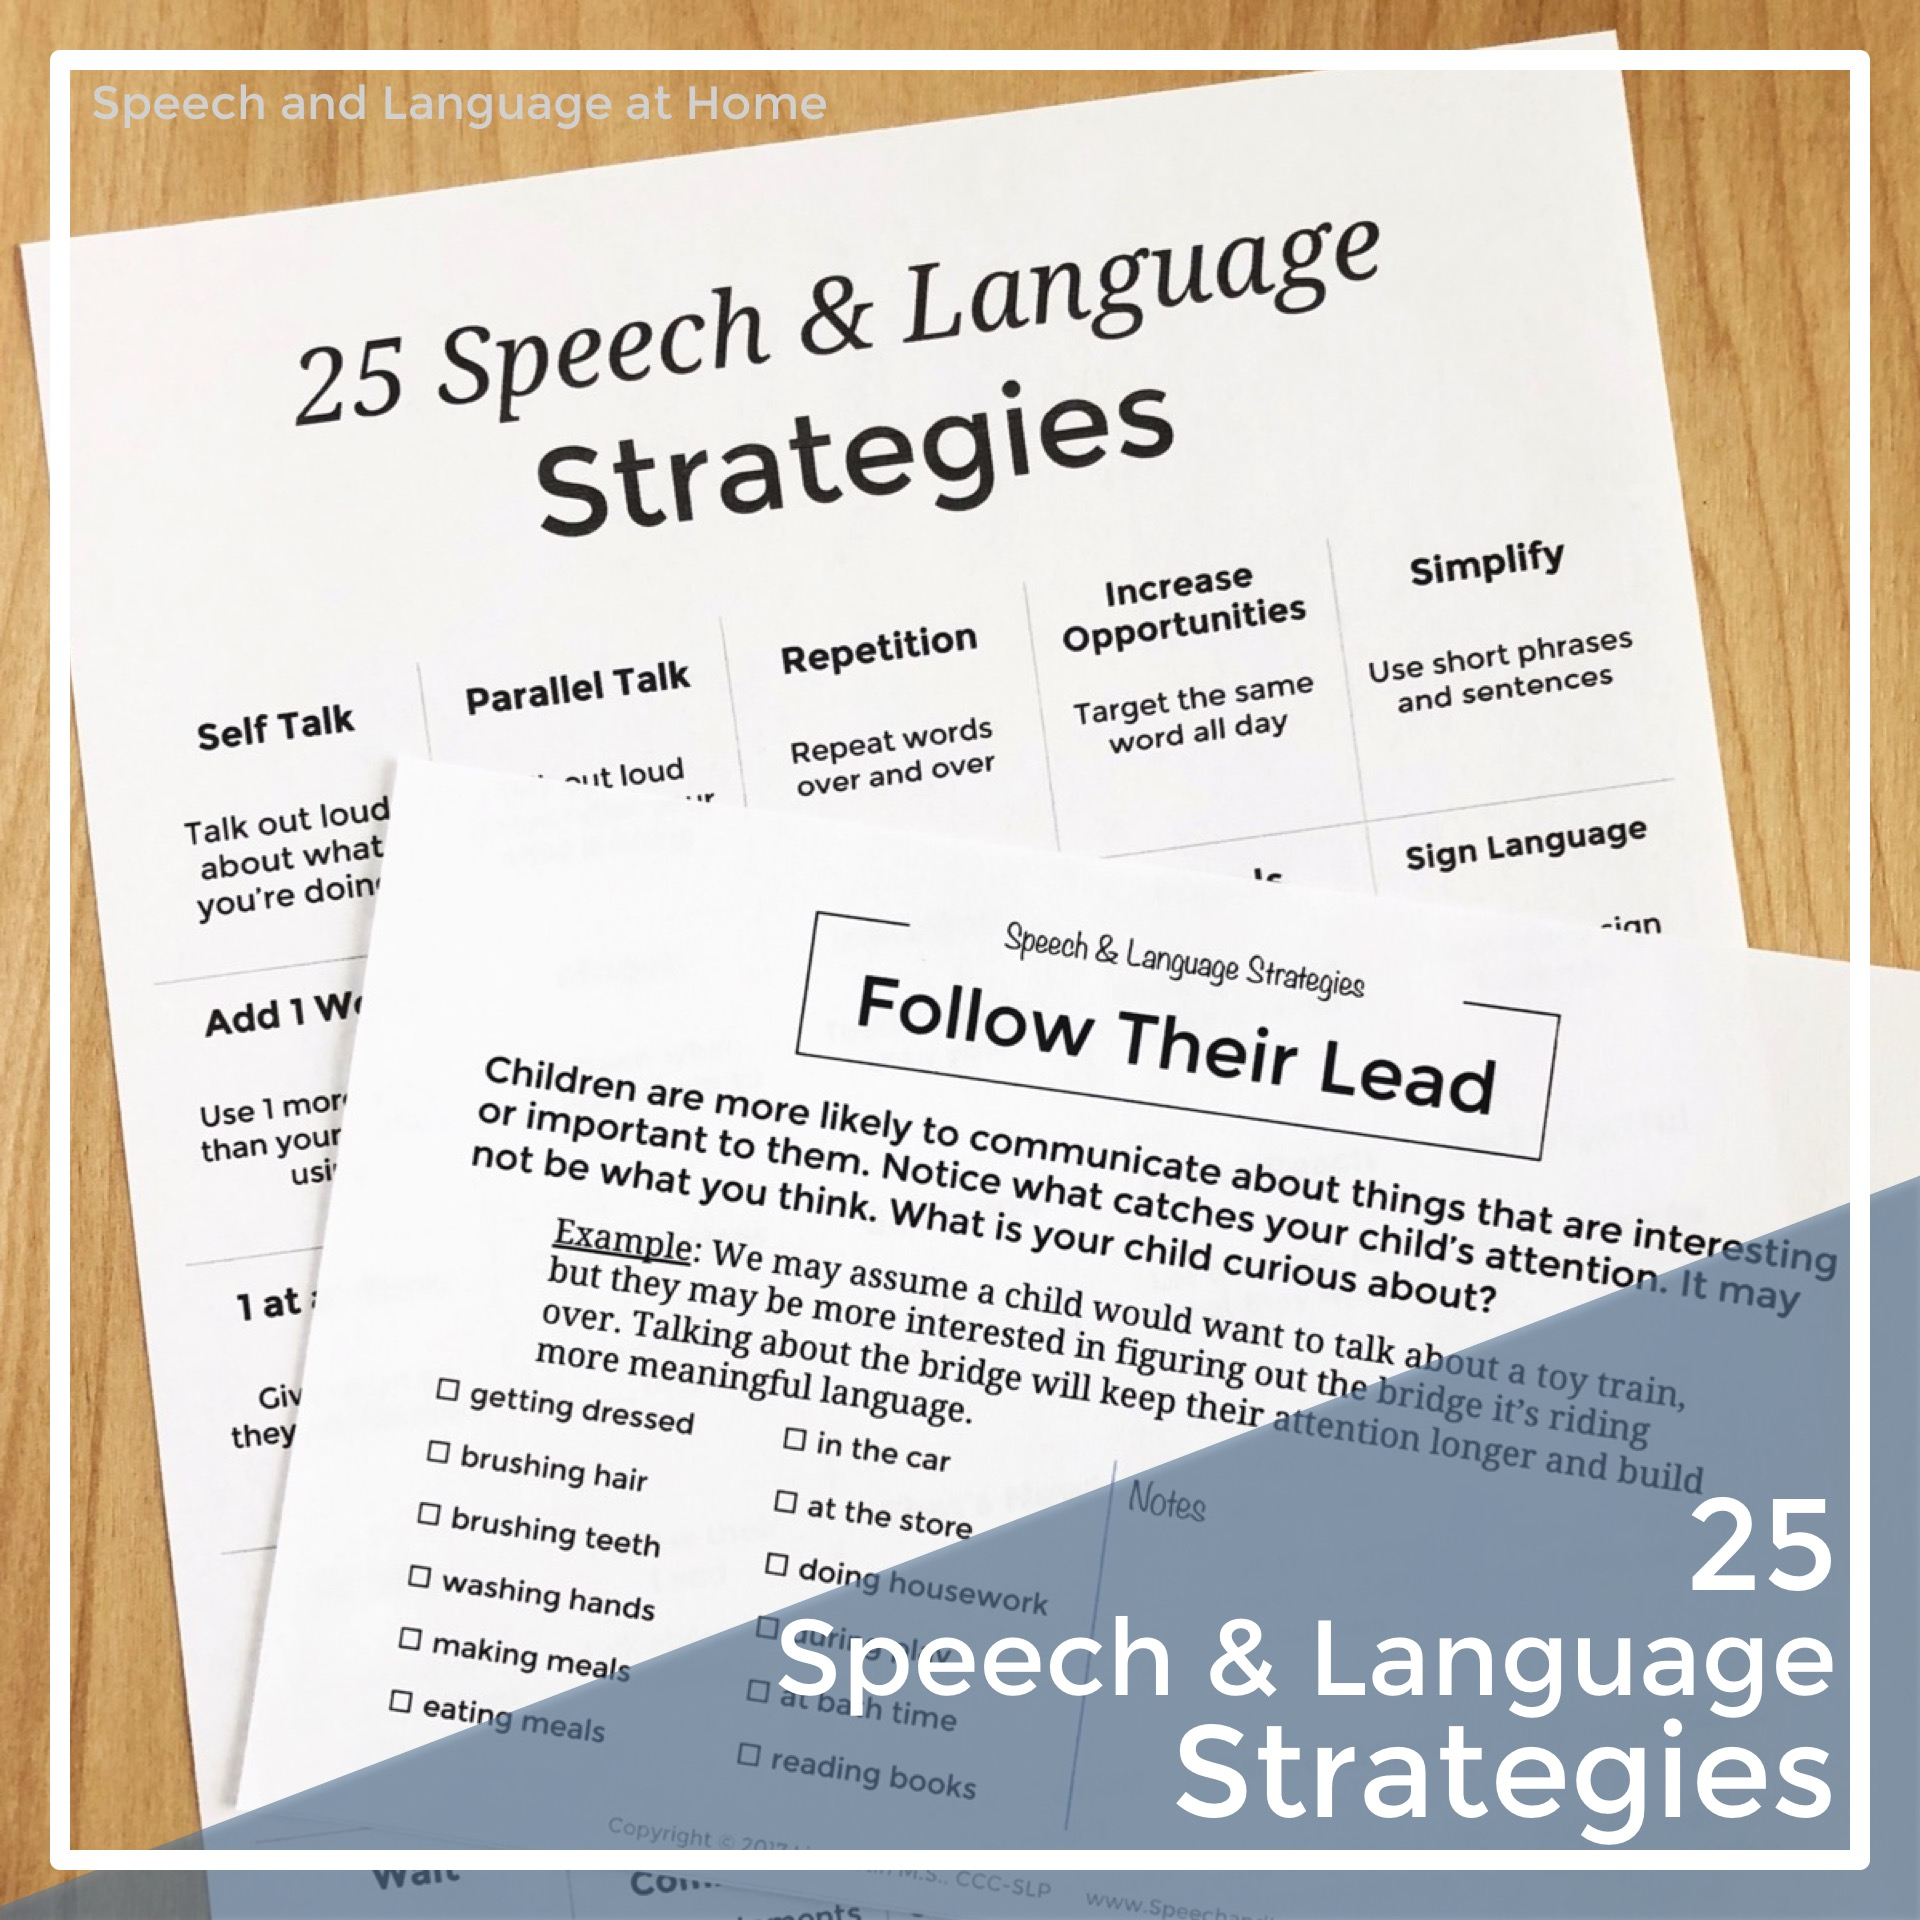 picture regarding Free Printable Speech Therapy Materials named Speech and Language at House